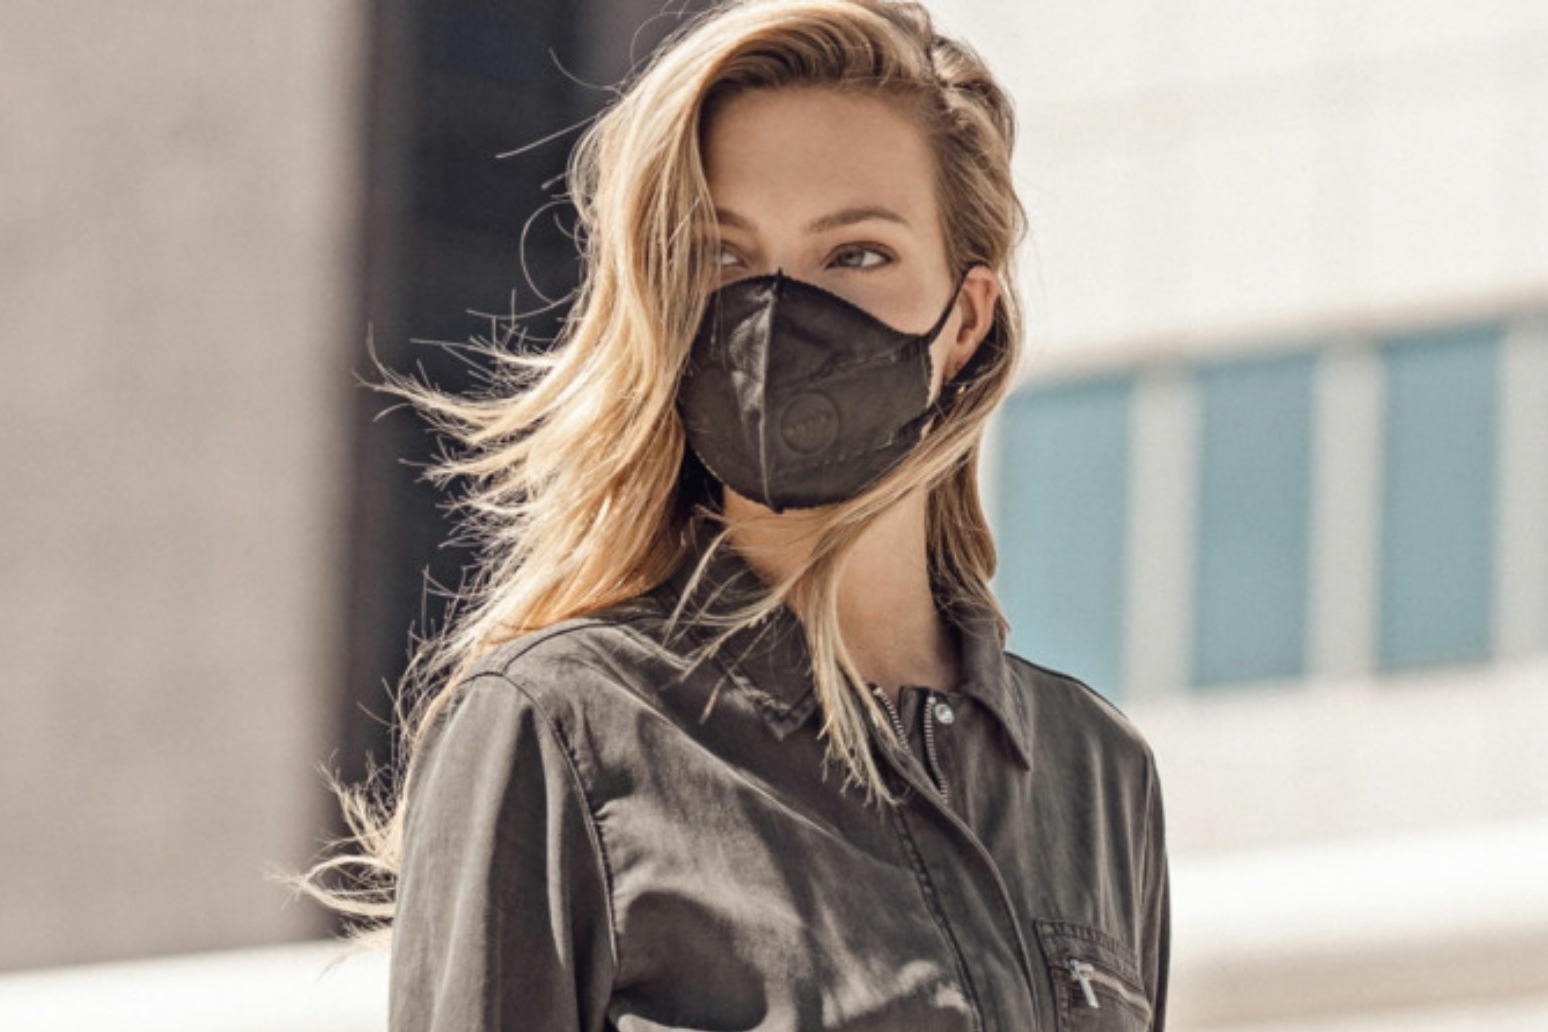 Testing finds 'alarming flaws' in effectiveness of widely-available face masks